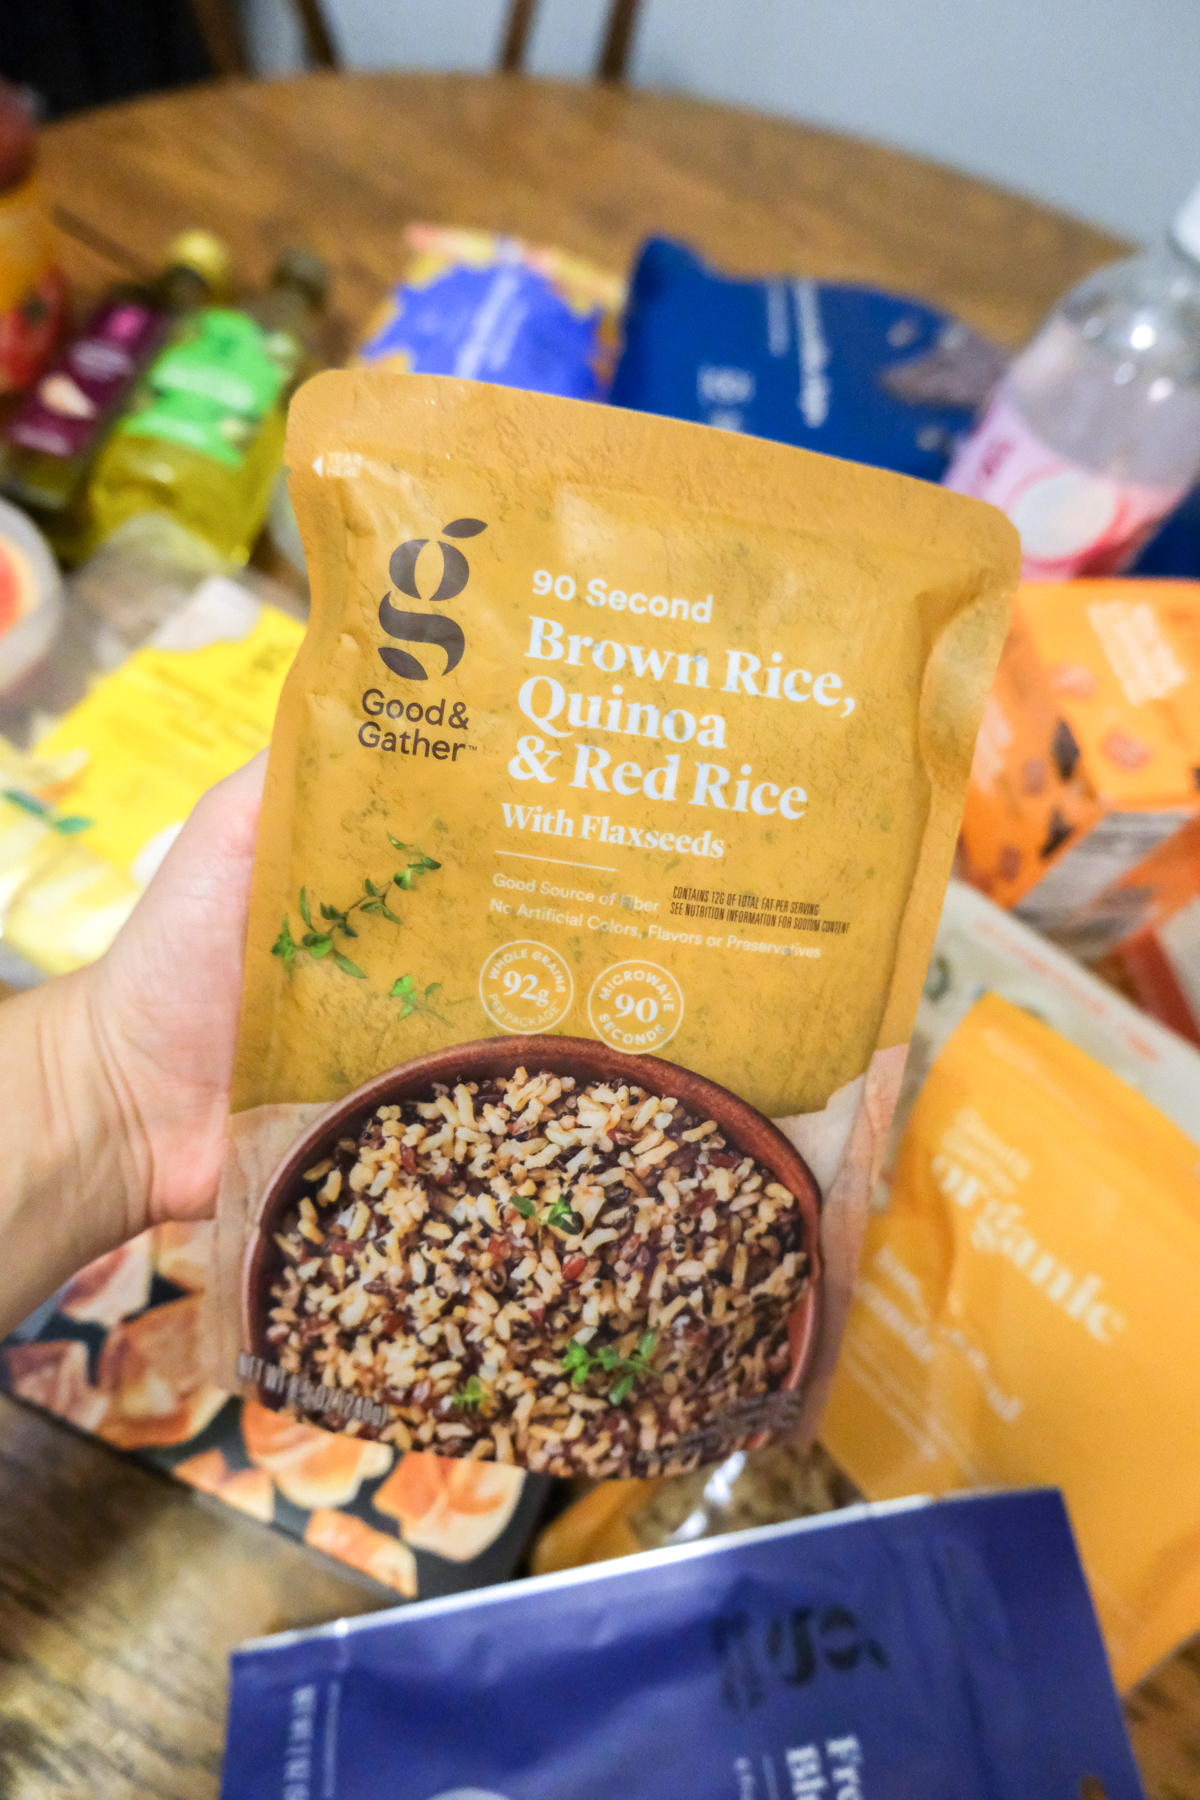 brown rice quinoa mix Good & Gather from Target